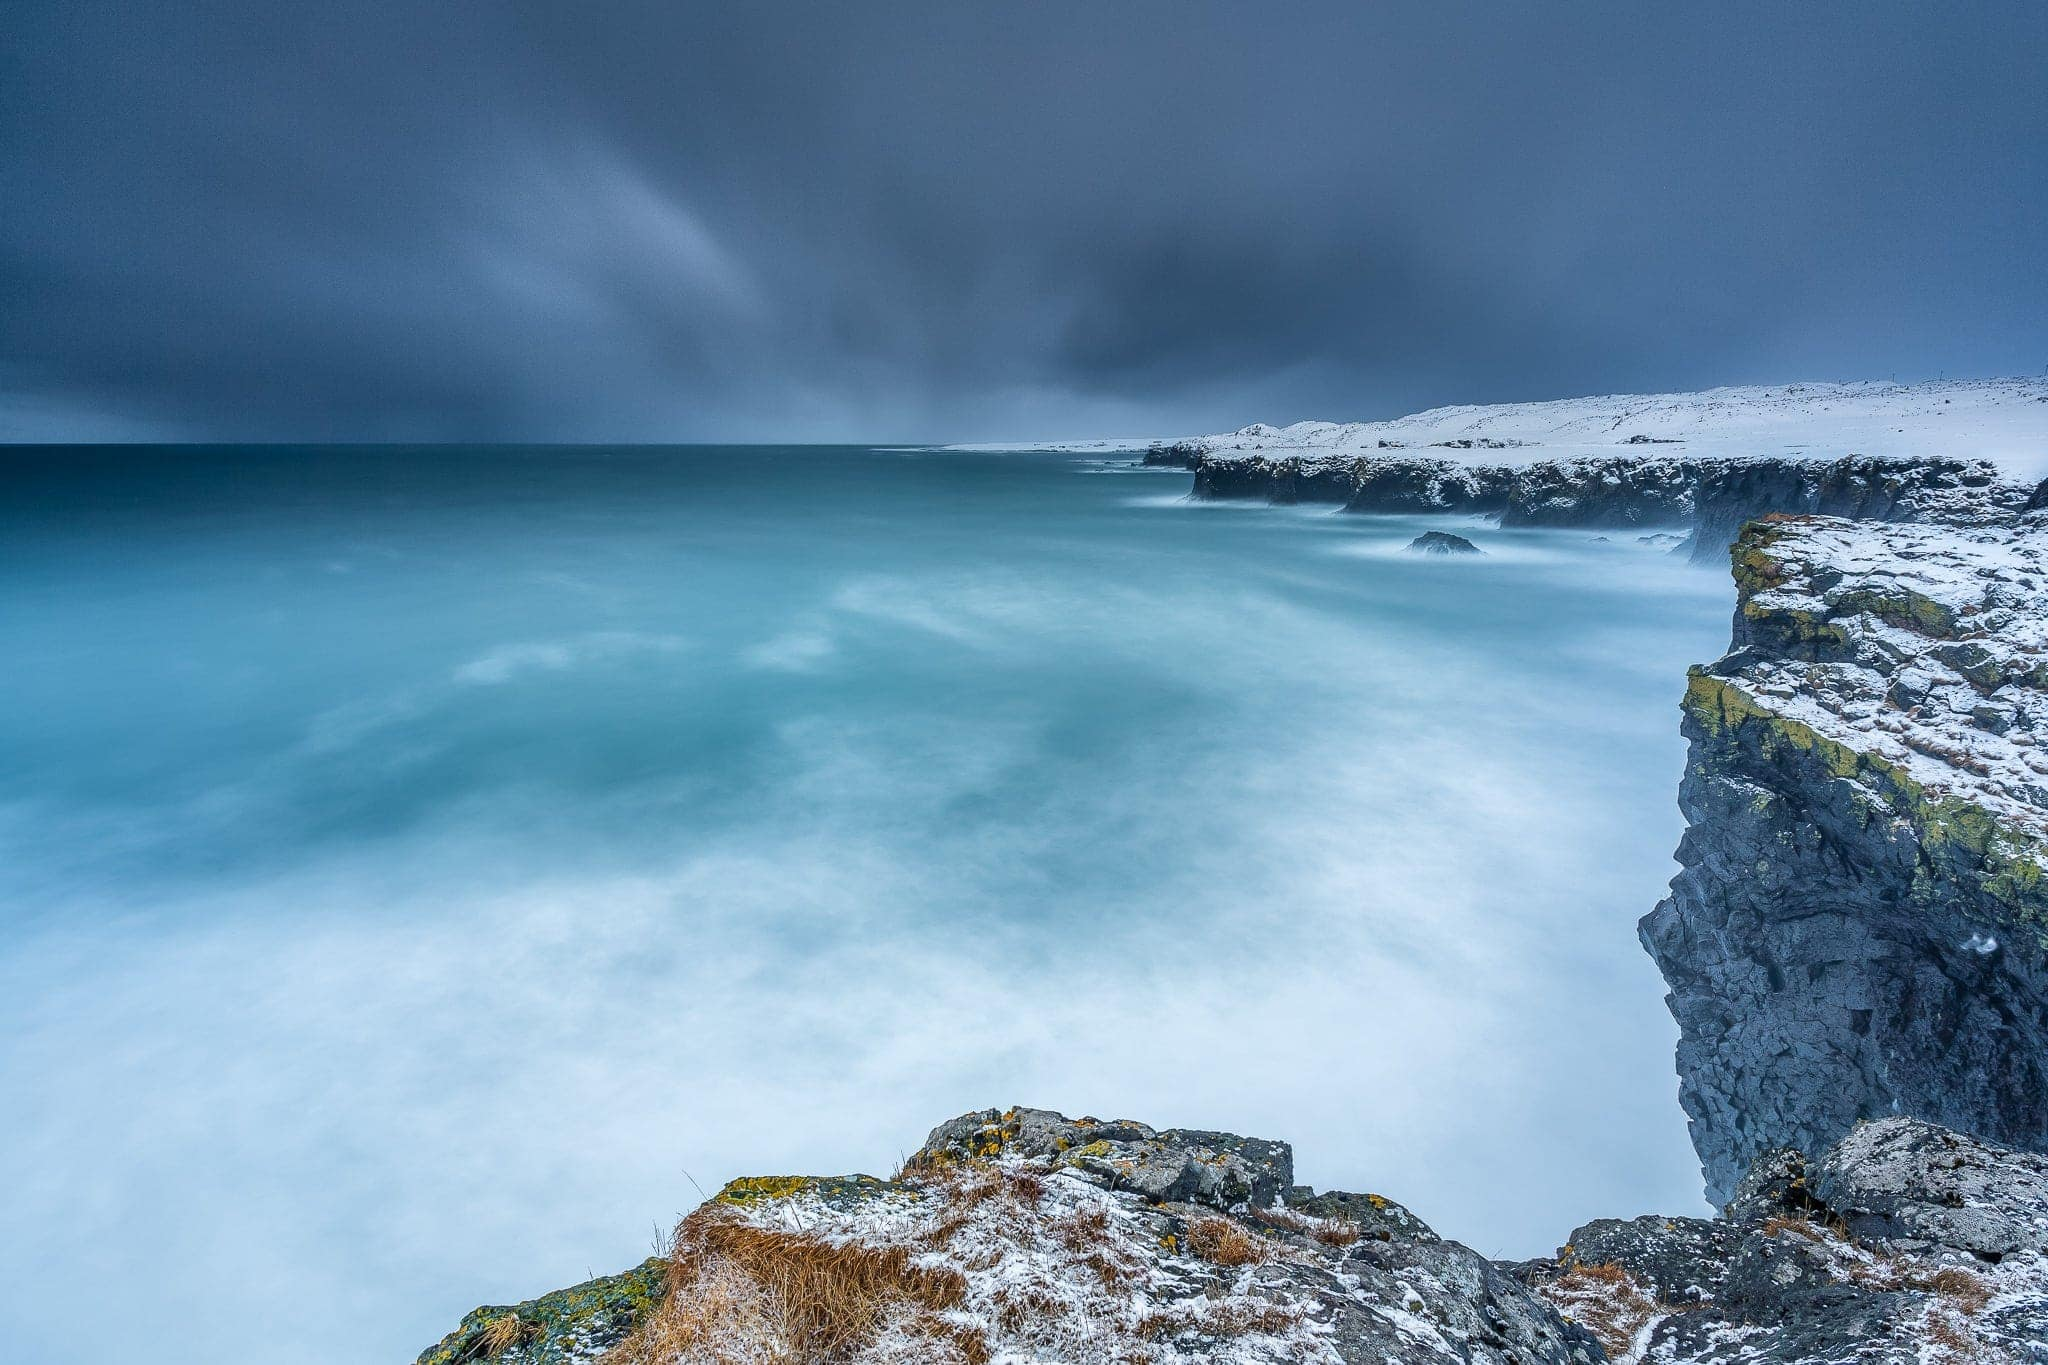 Francesco Gola Seascape Landscape Photography Iceland Blizzard Arnastarpi Snow Winter Long Exposure Francesco Gola FineArt Prints Home Interior Design Iceland Sunset Snaefellsnes peninsula